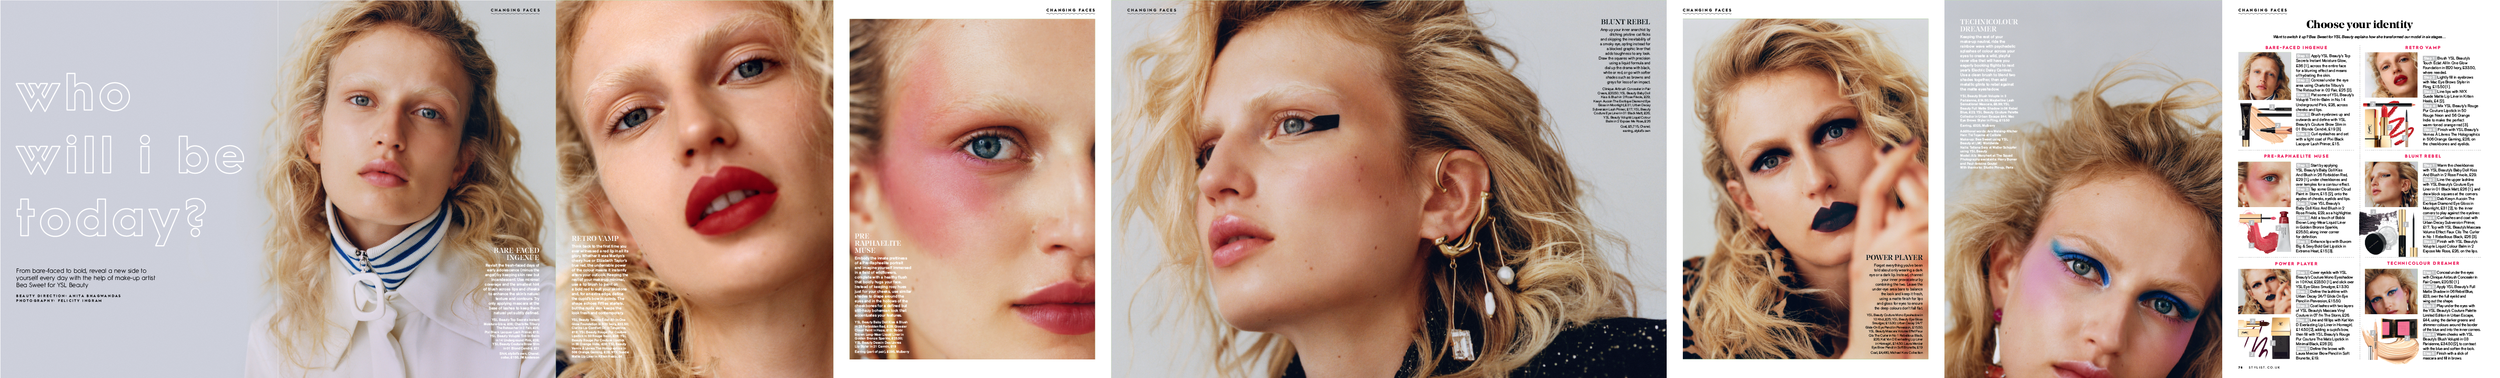 STYLIST - YSL BEAUTY SHOOT (MUA - BEA SWEET, PHOTO- FELICITY INGRAM)